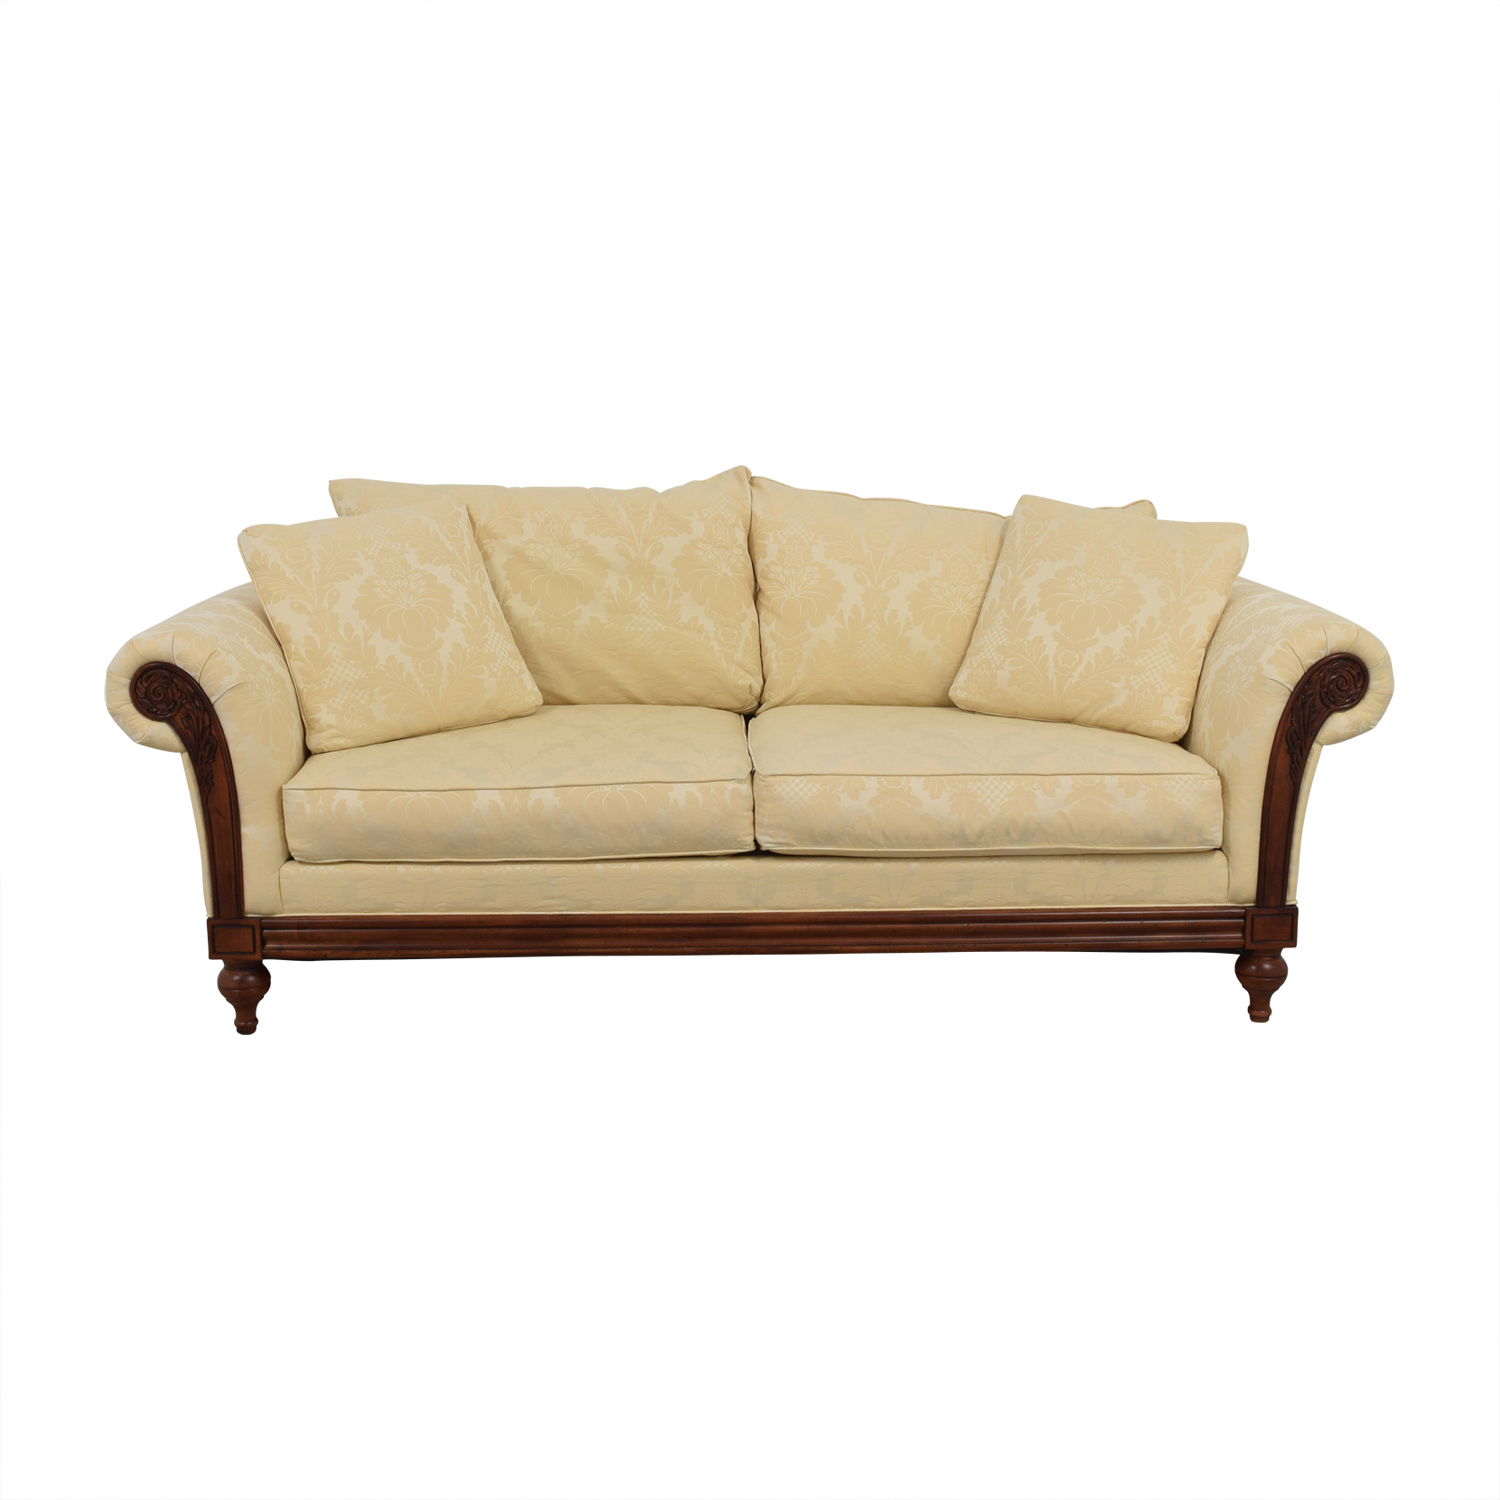 buy Ethan Allen Ivory Jacquard Sofa with Wood Frame Ethan Allen Sofas